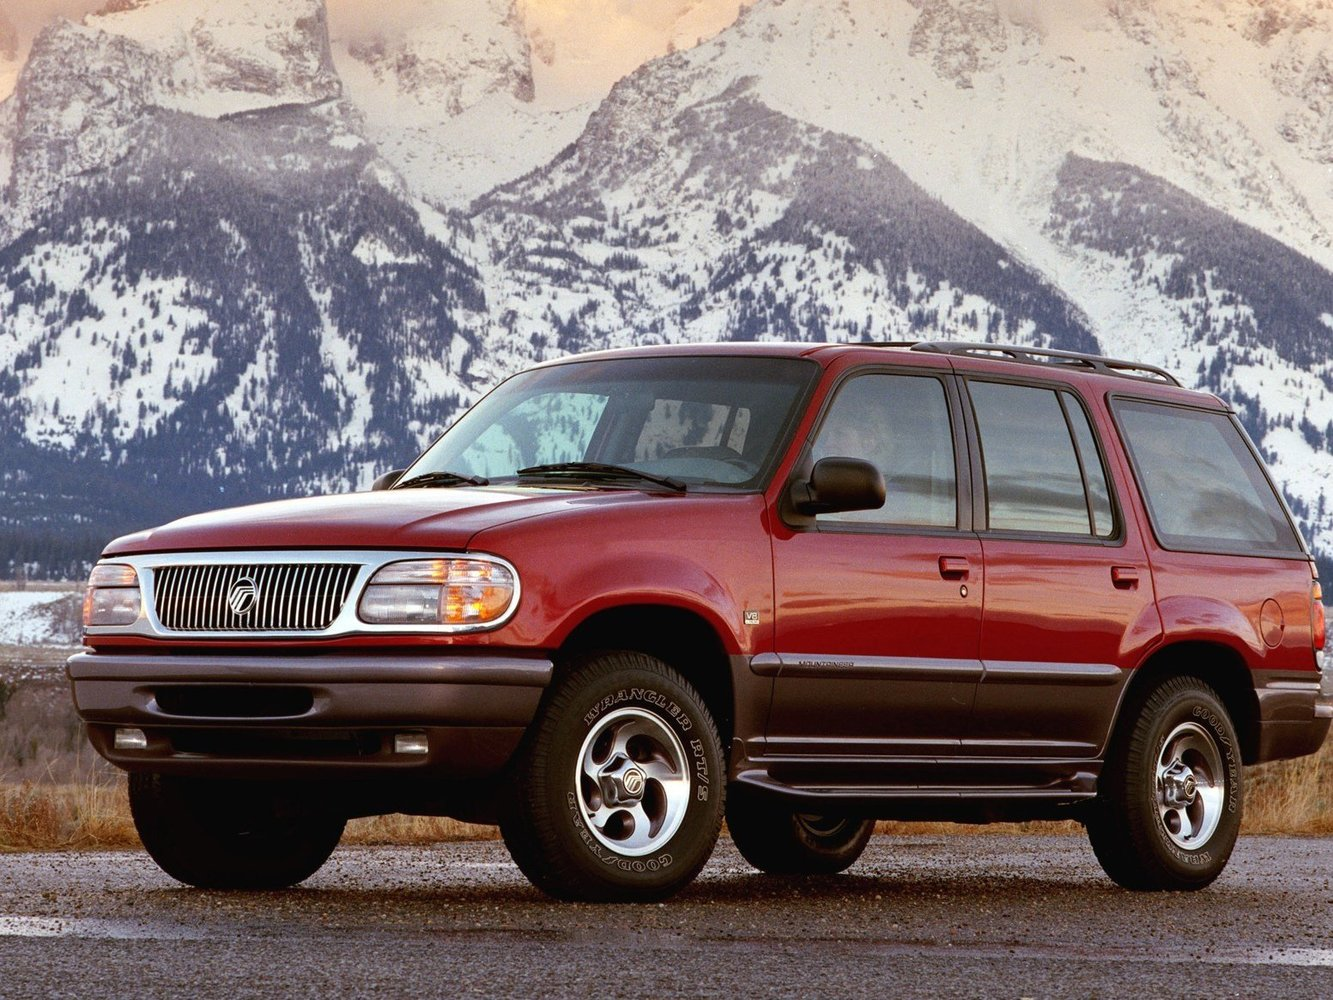 mercury Mercury Mountaineer